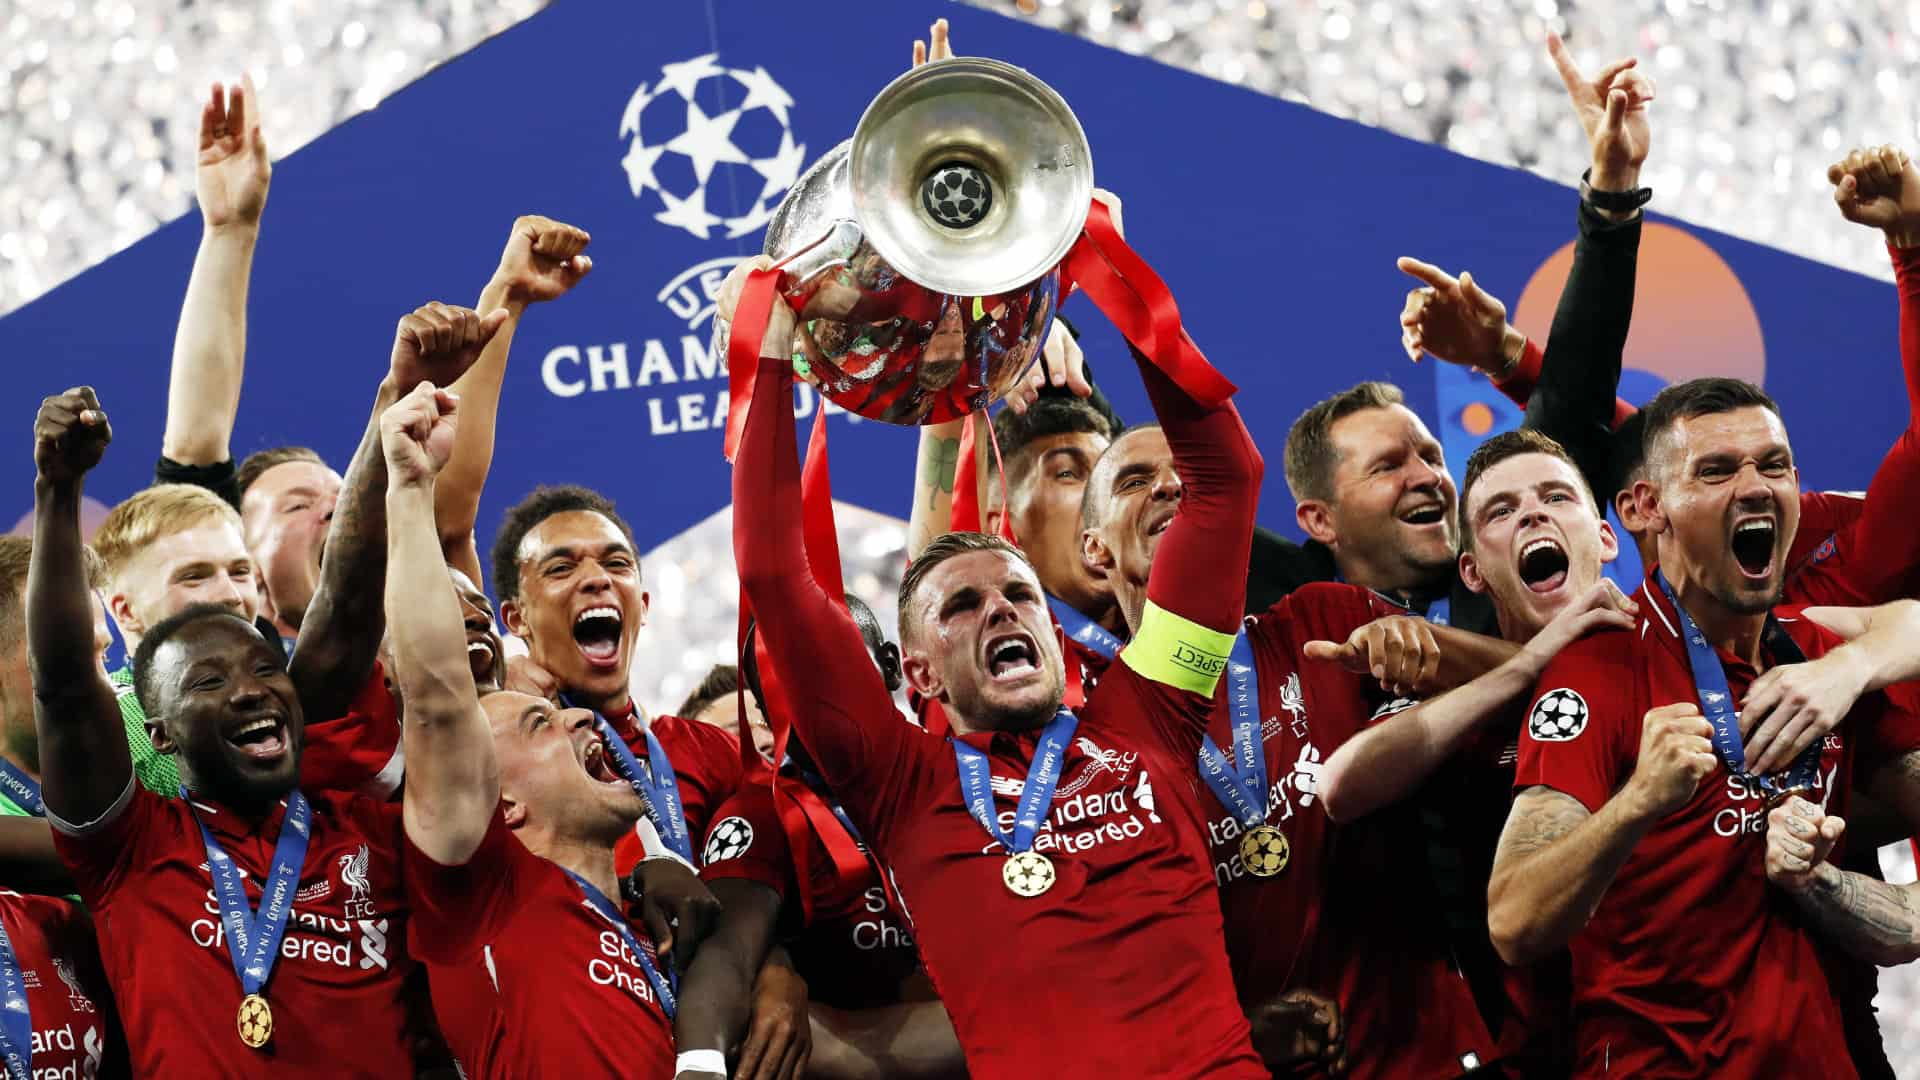 Liverpool Champions League Final 2019 Wallpapers Wallpaper Cave